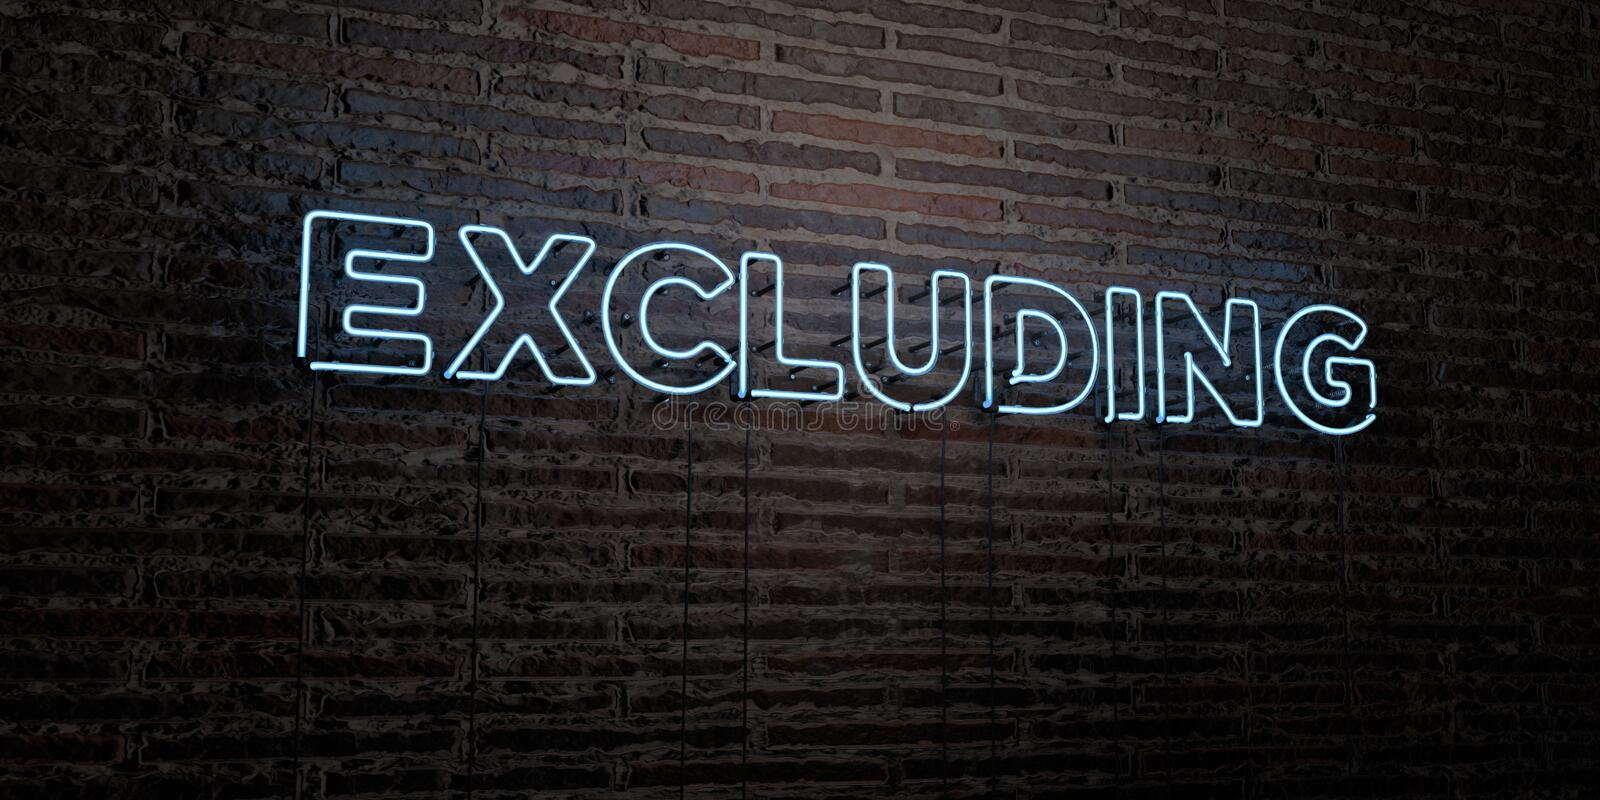 EXCLUDING -Realistic Neon Sign on Brick Wall background - 3D rendered royalty free stock image. Can be used for online banner ads and direct mailers stock illustration